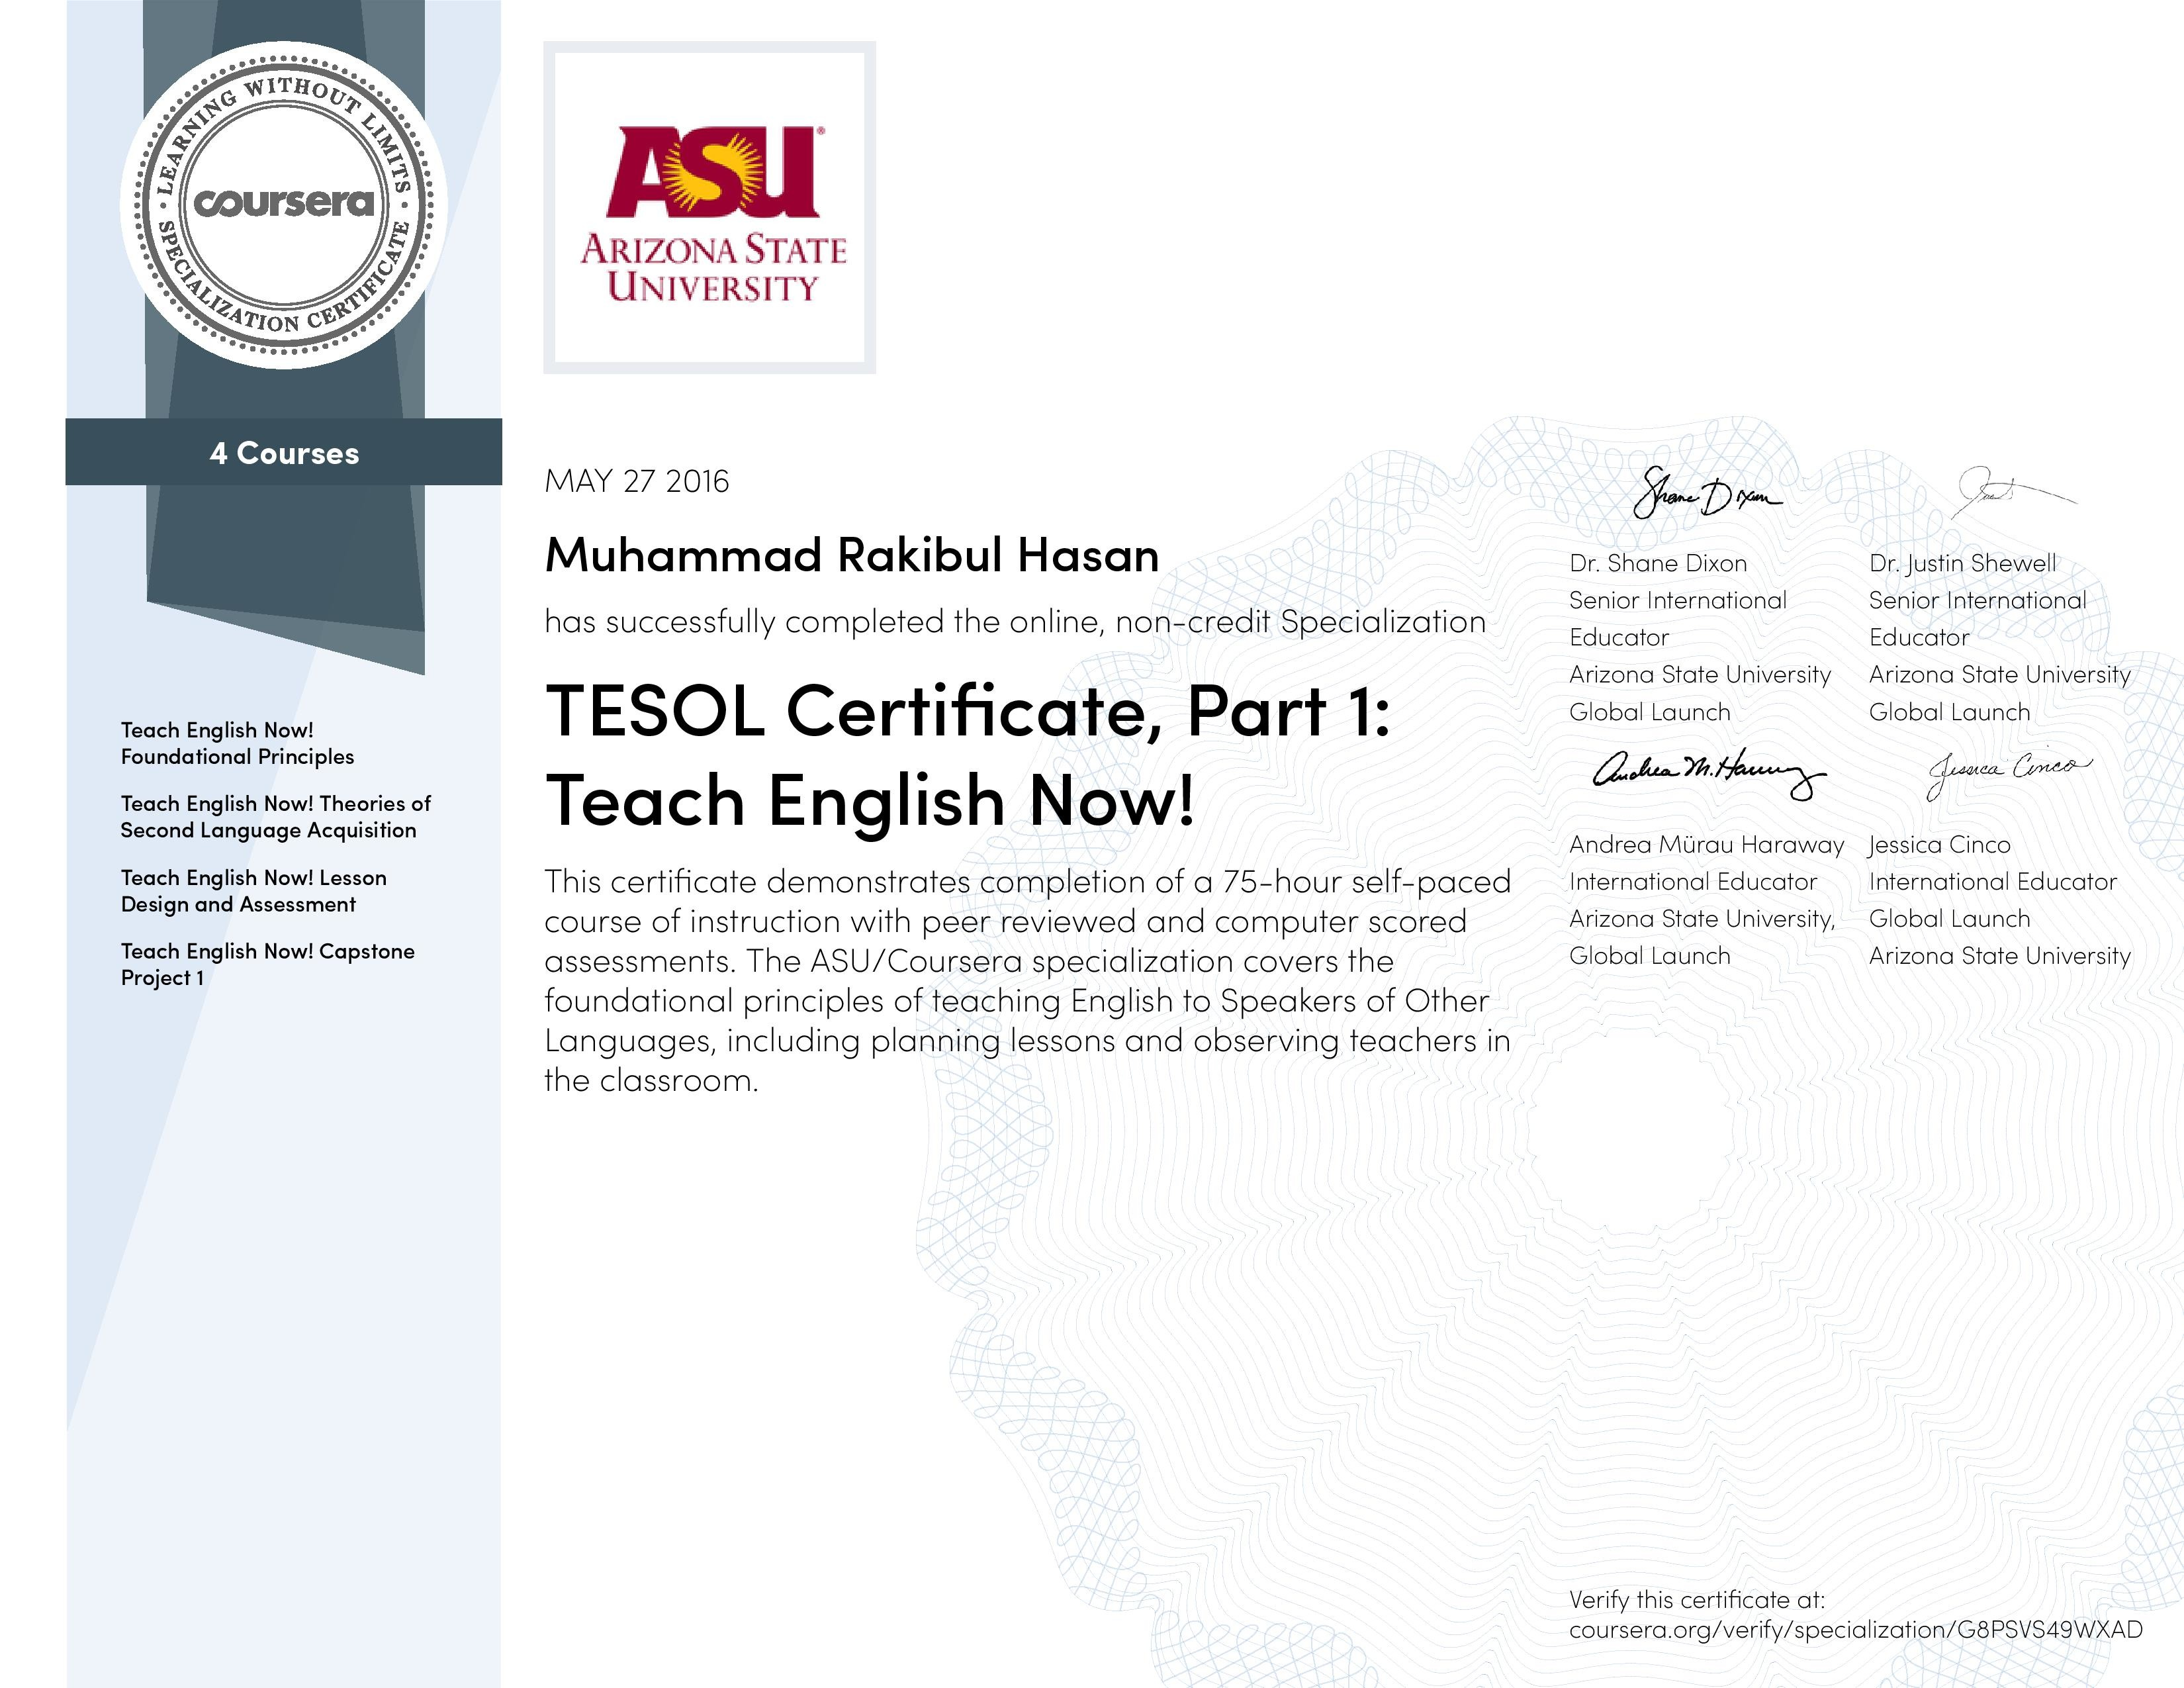 Eulalia Bourne S Arizona State Retirement System Certificate Source Teacher Certification Research Papers Are Plagiarism Free